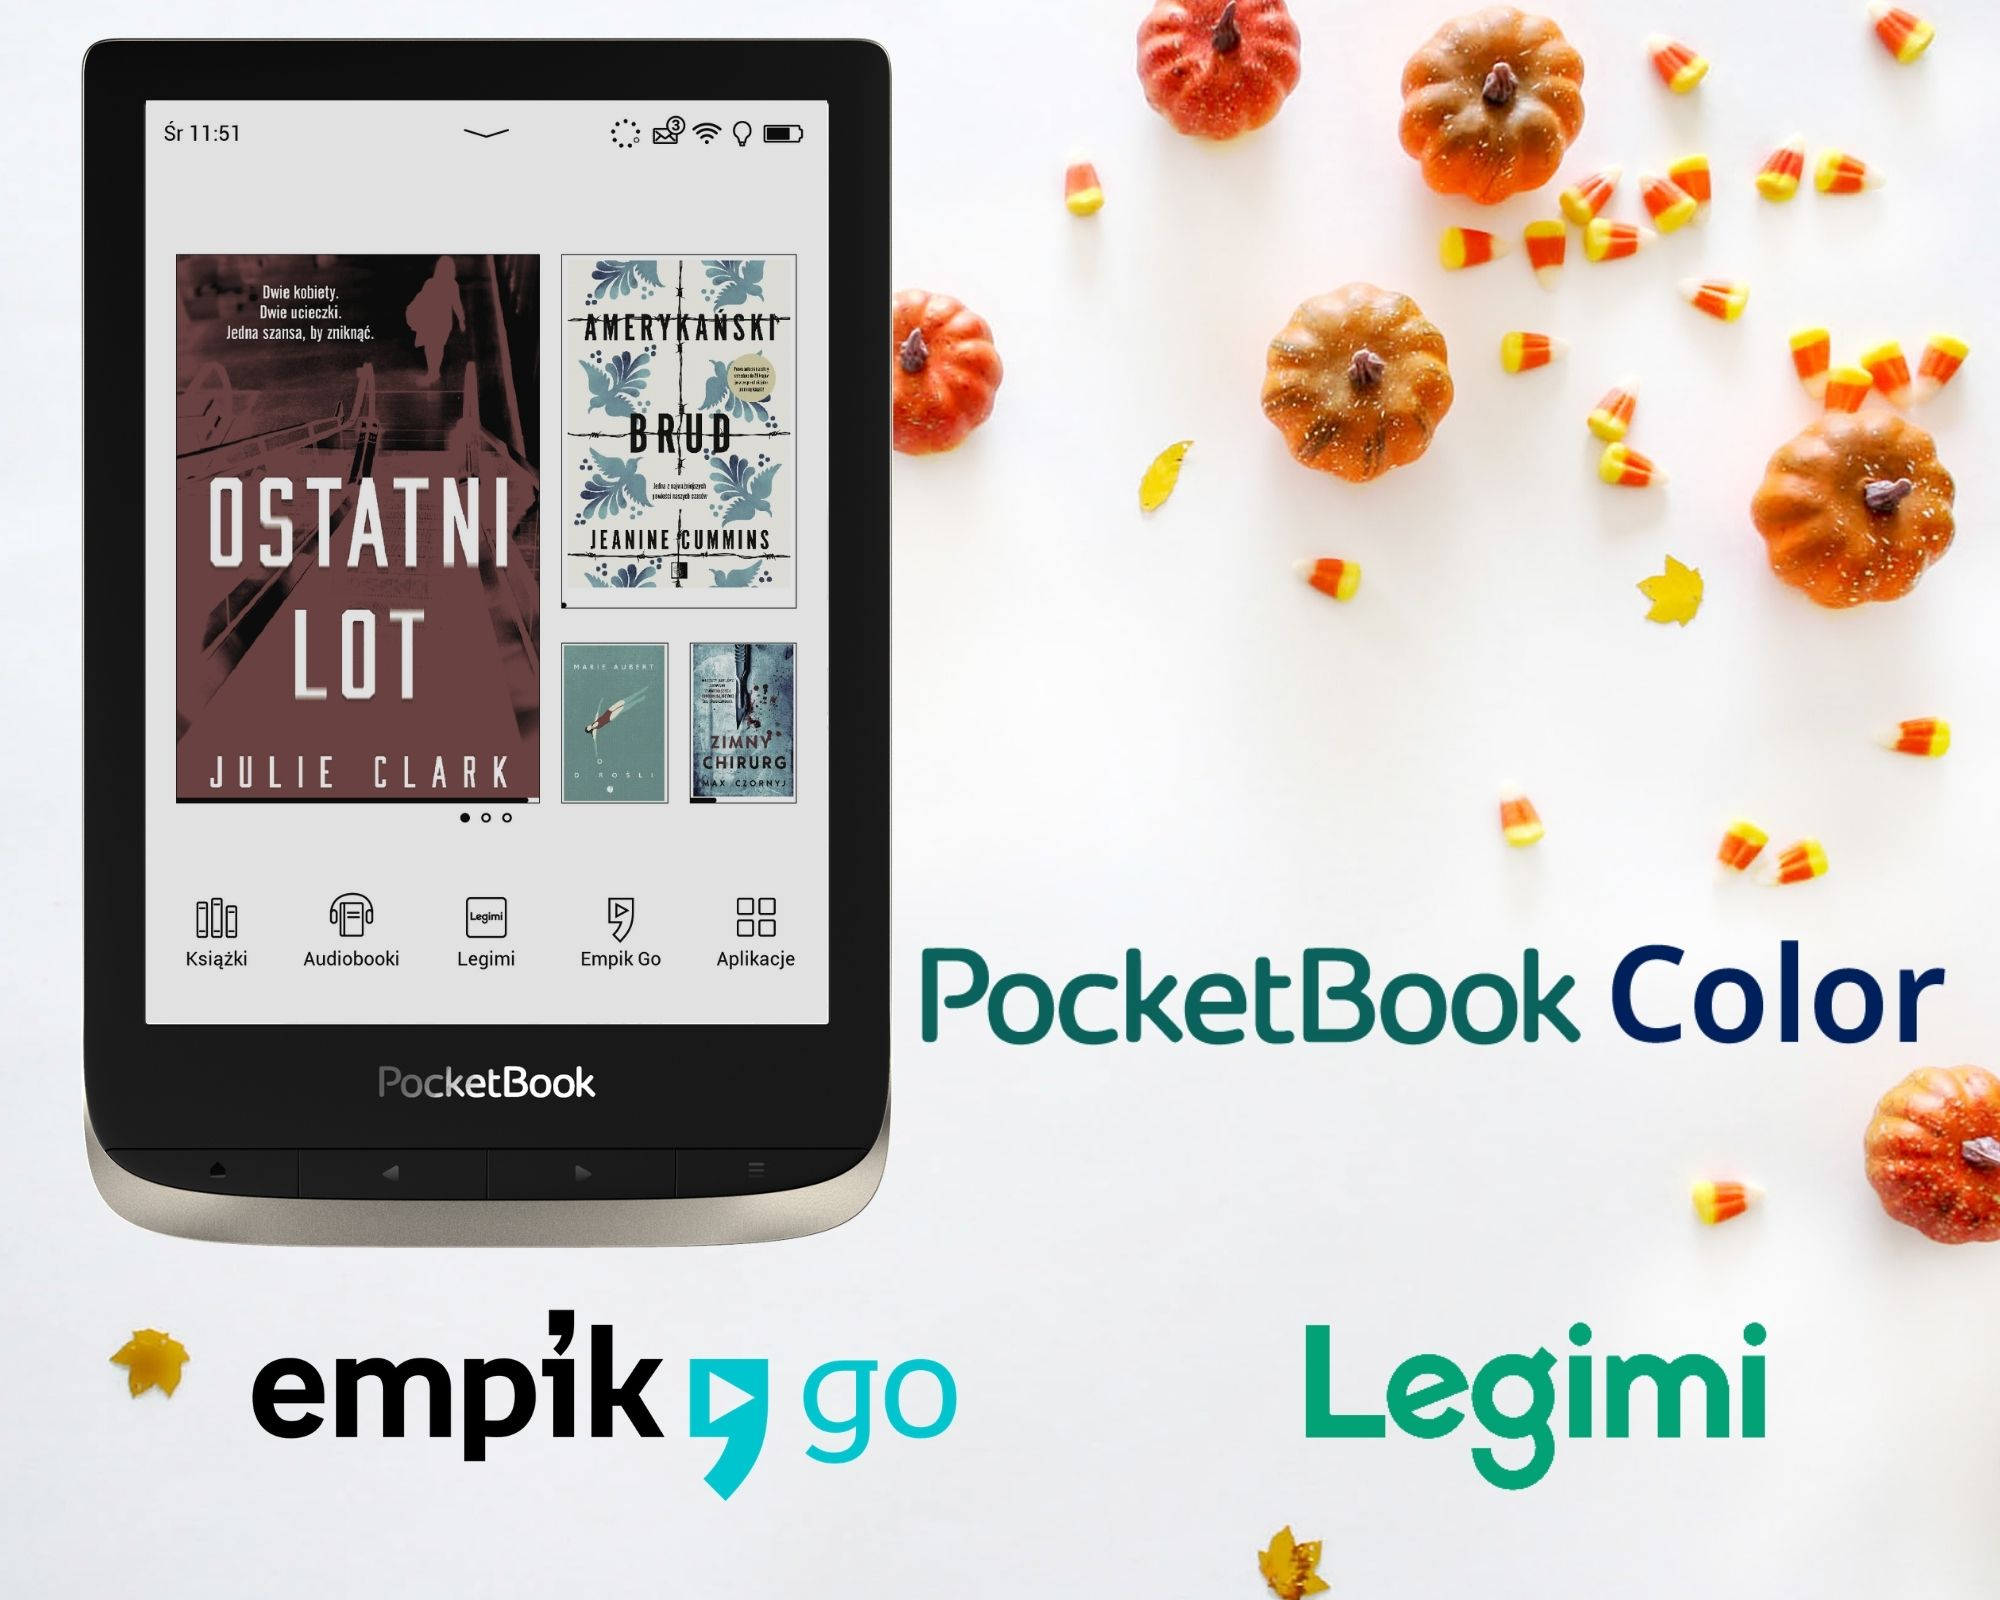 Empik Go i Legimi na PocketBook color